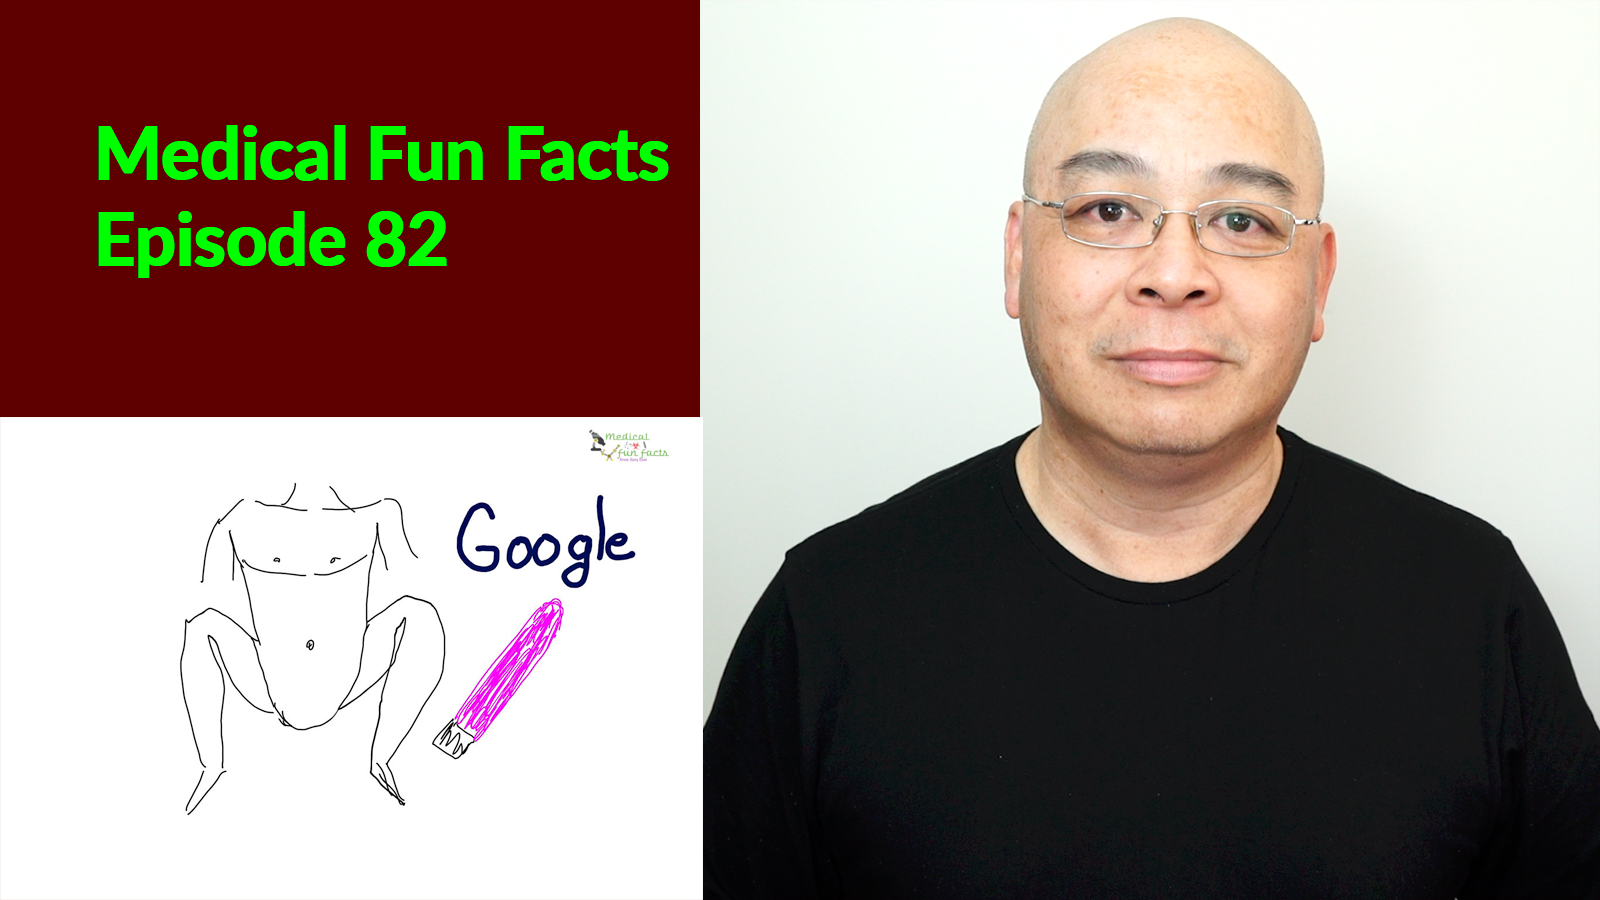 Medical Fun Facts Episode 82 Gary Lum